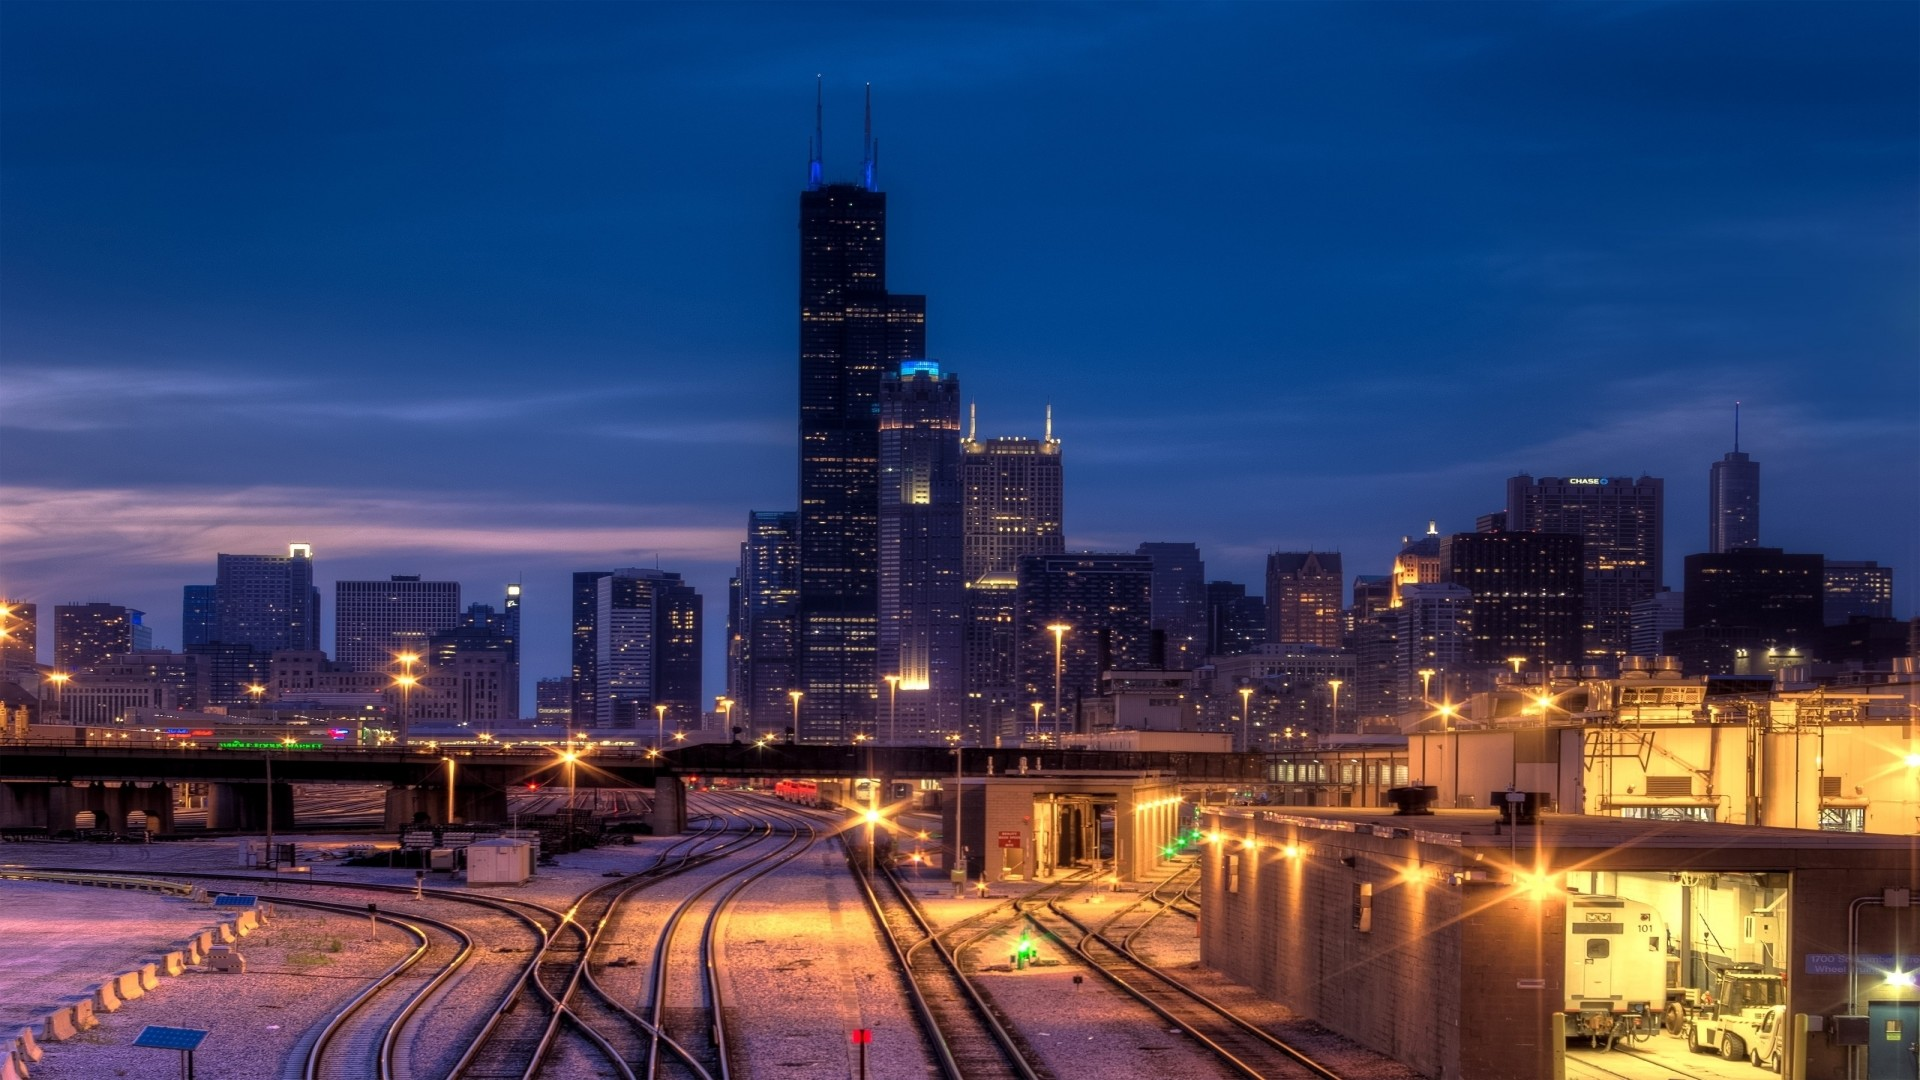 1920x1080 Chicago Illinois Widescreen Wallpaper